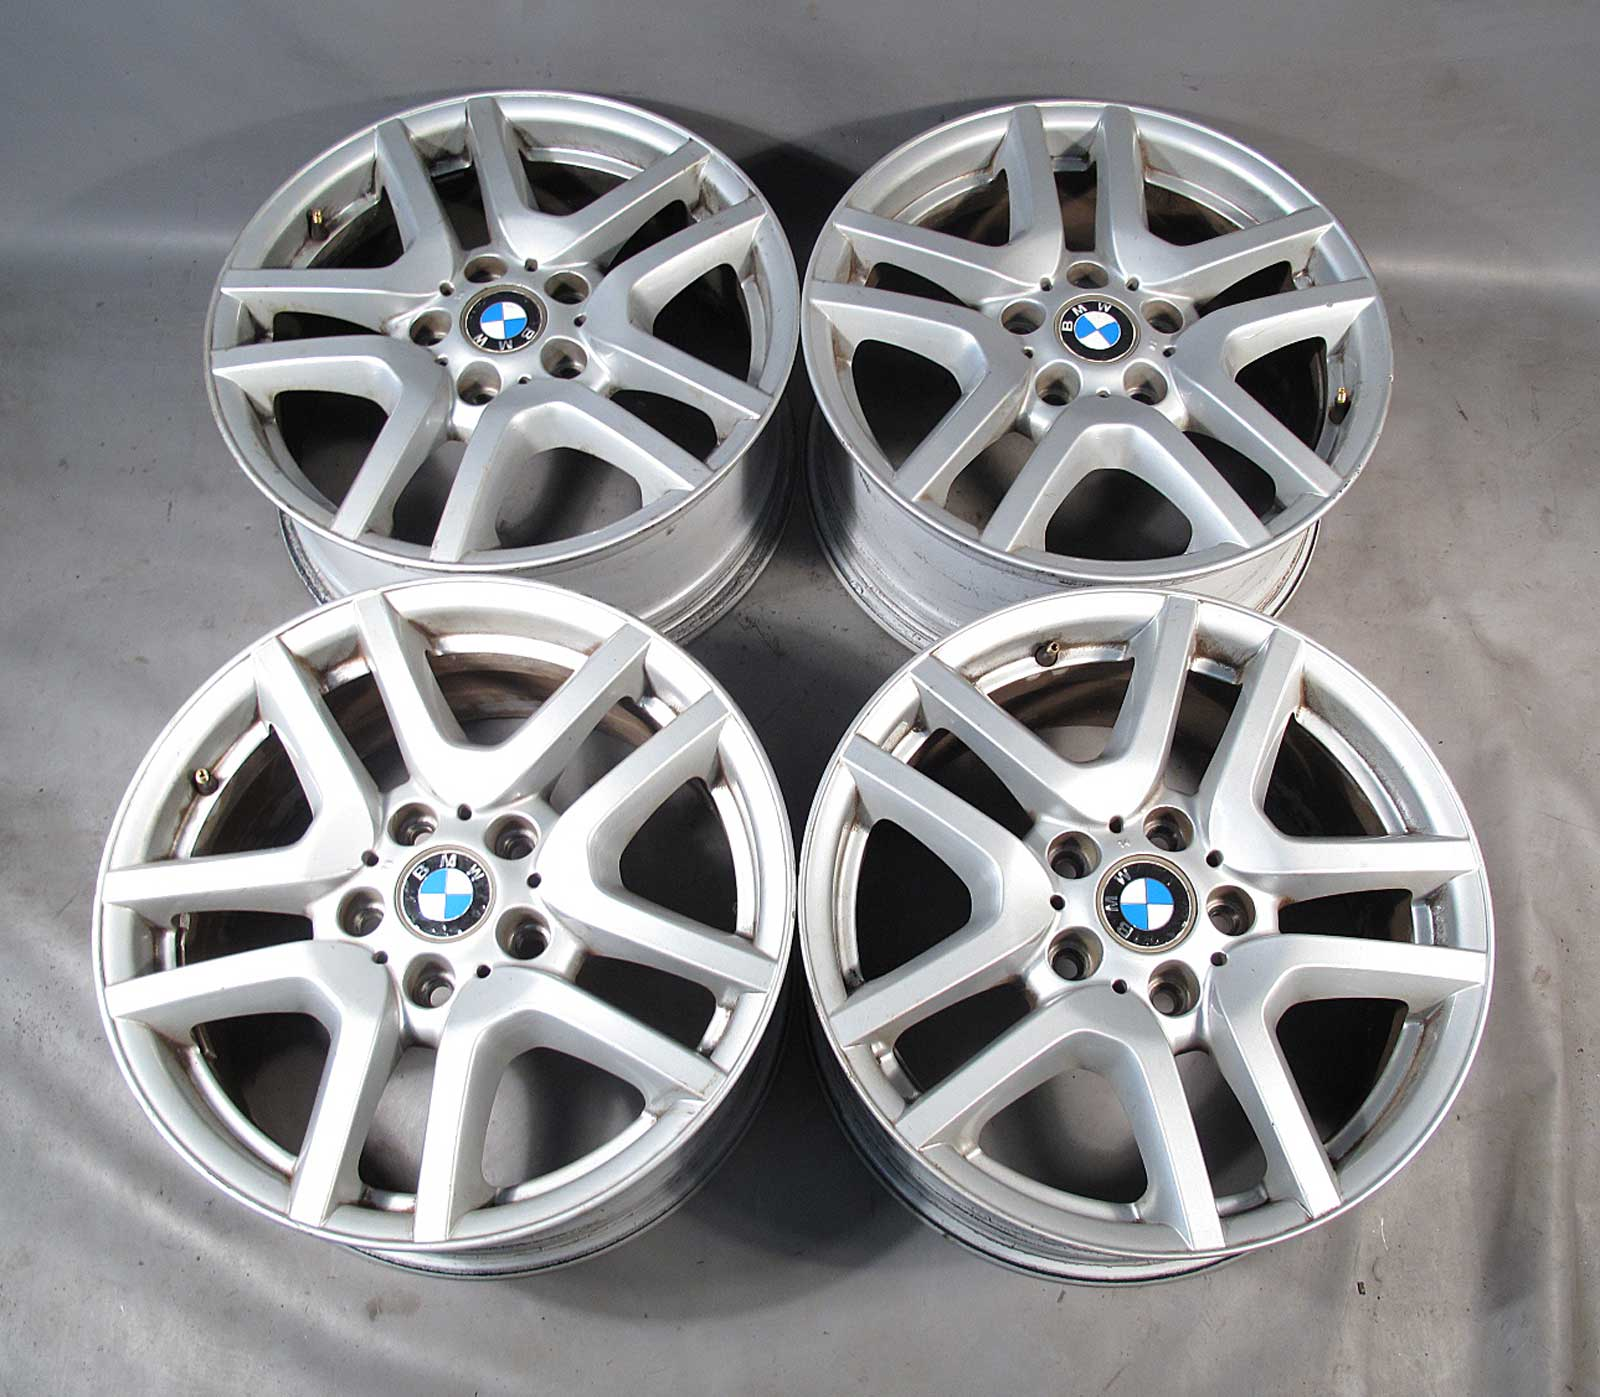 style showroom inc spoke info id p alloysfully tyres styles ad bmw radial rim used fully genuine refurbed alloys product